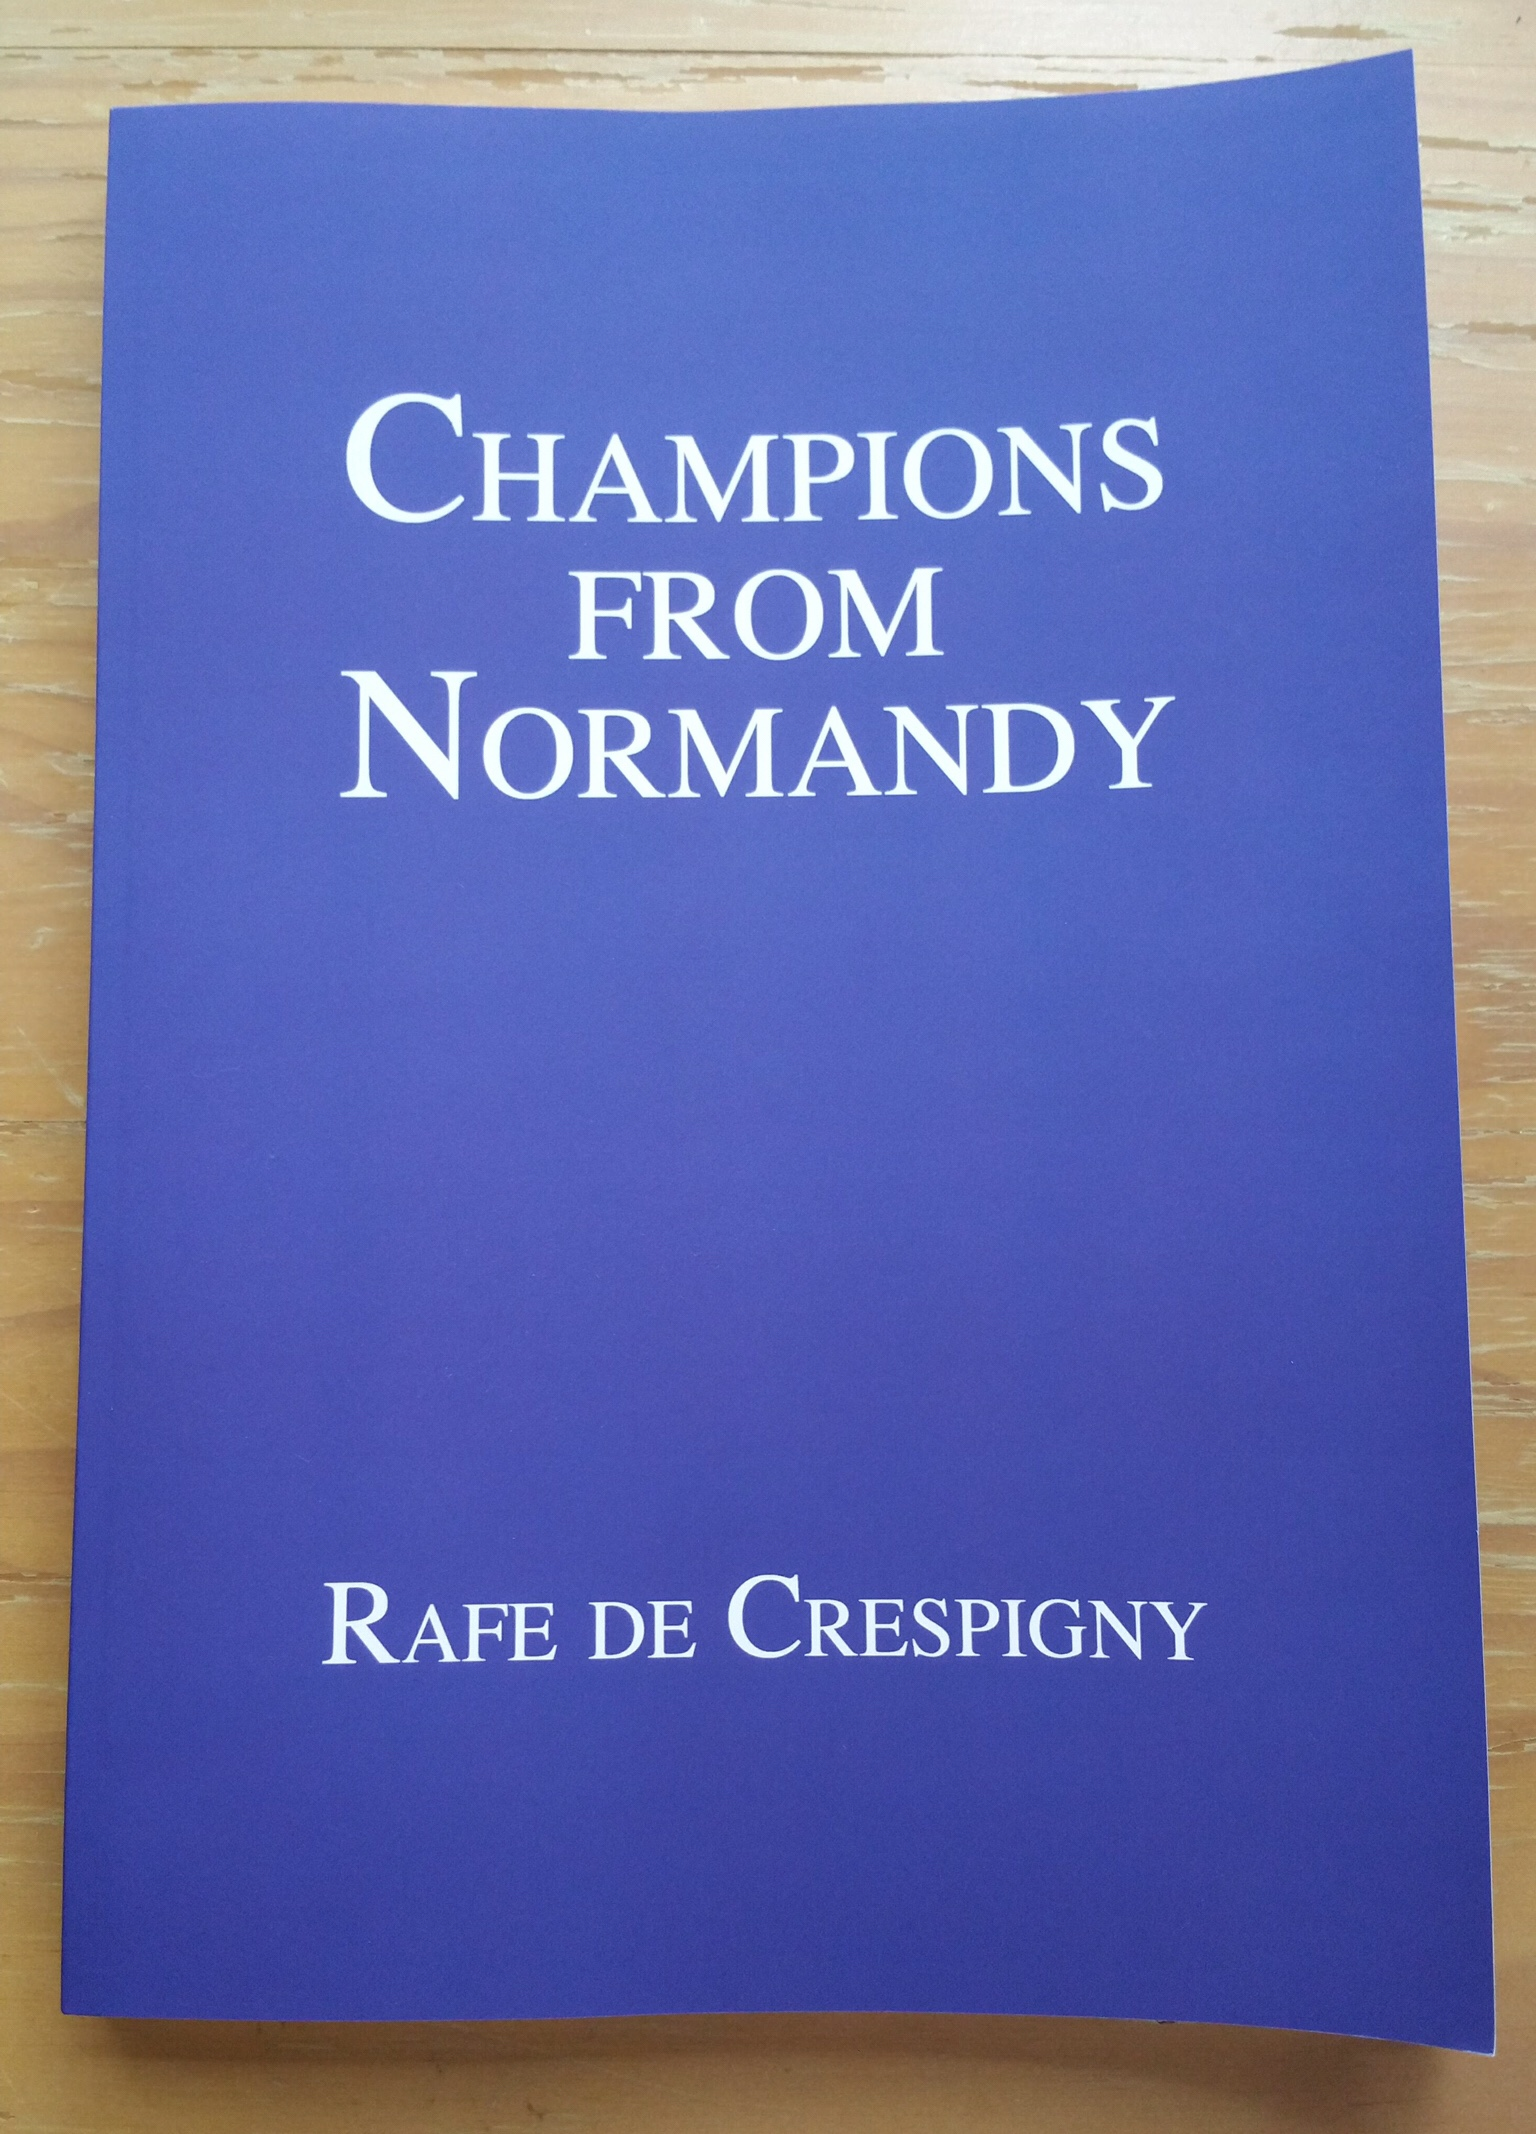 Paperback version of Champions from Normandy